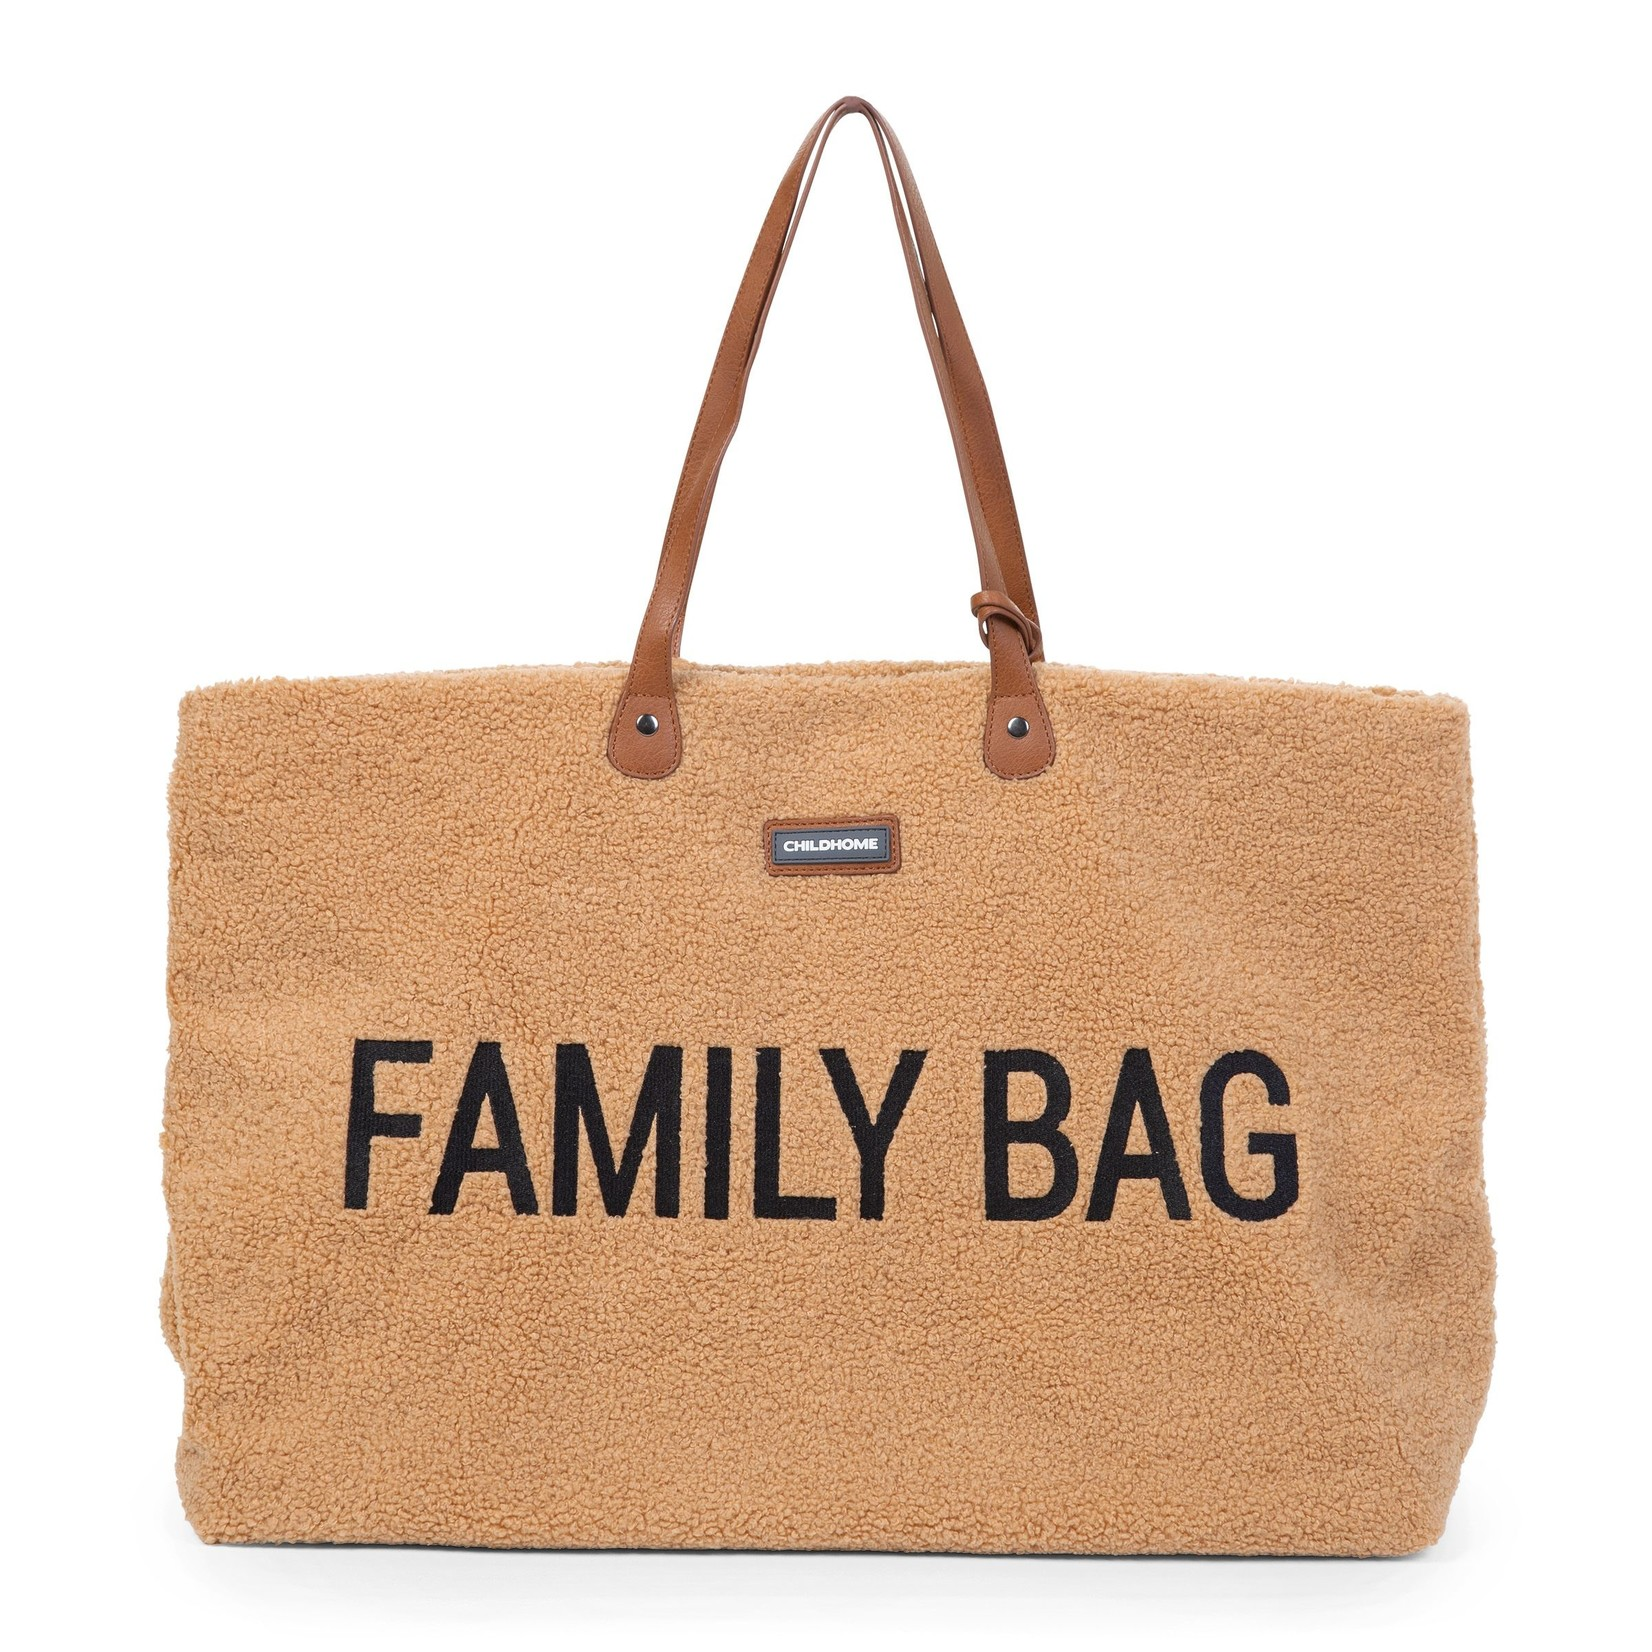 Childhome Childhome Family Bag Teddy Beige